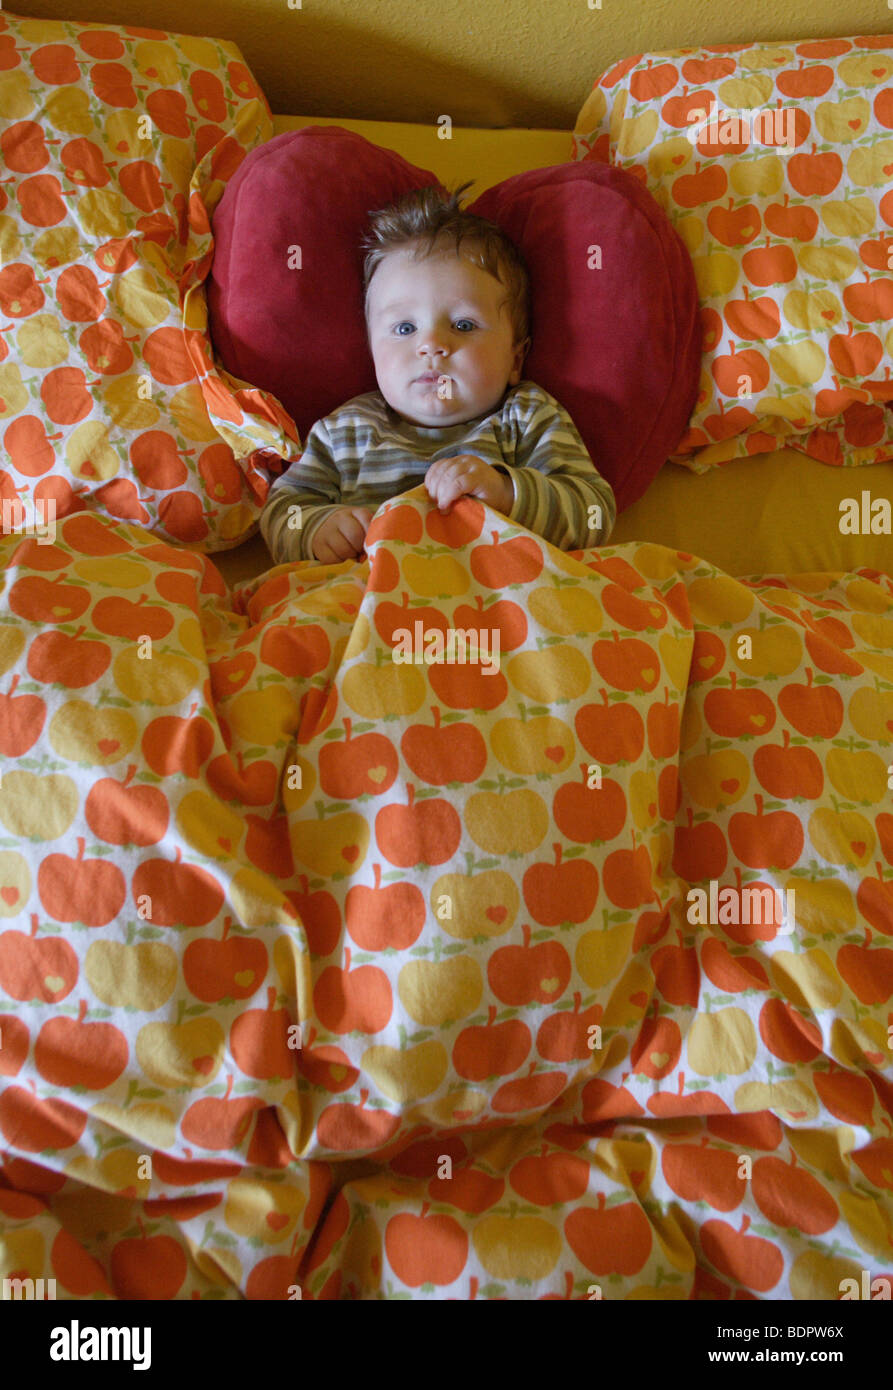 Baby in bed - Stock Image